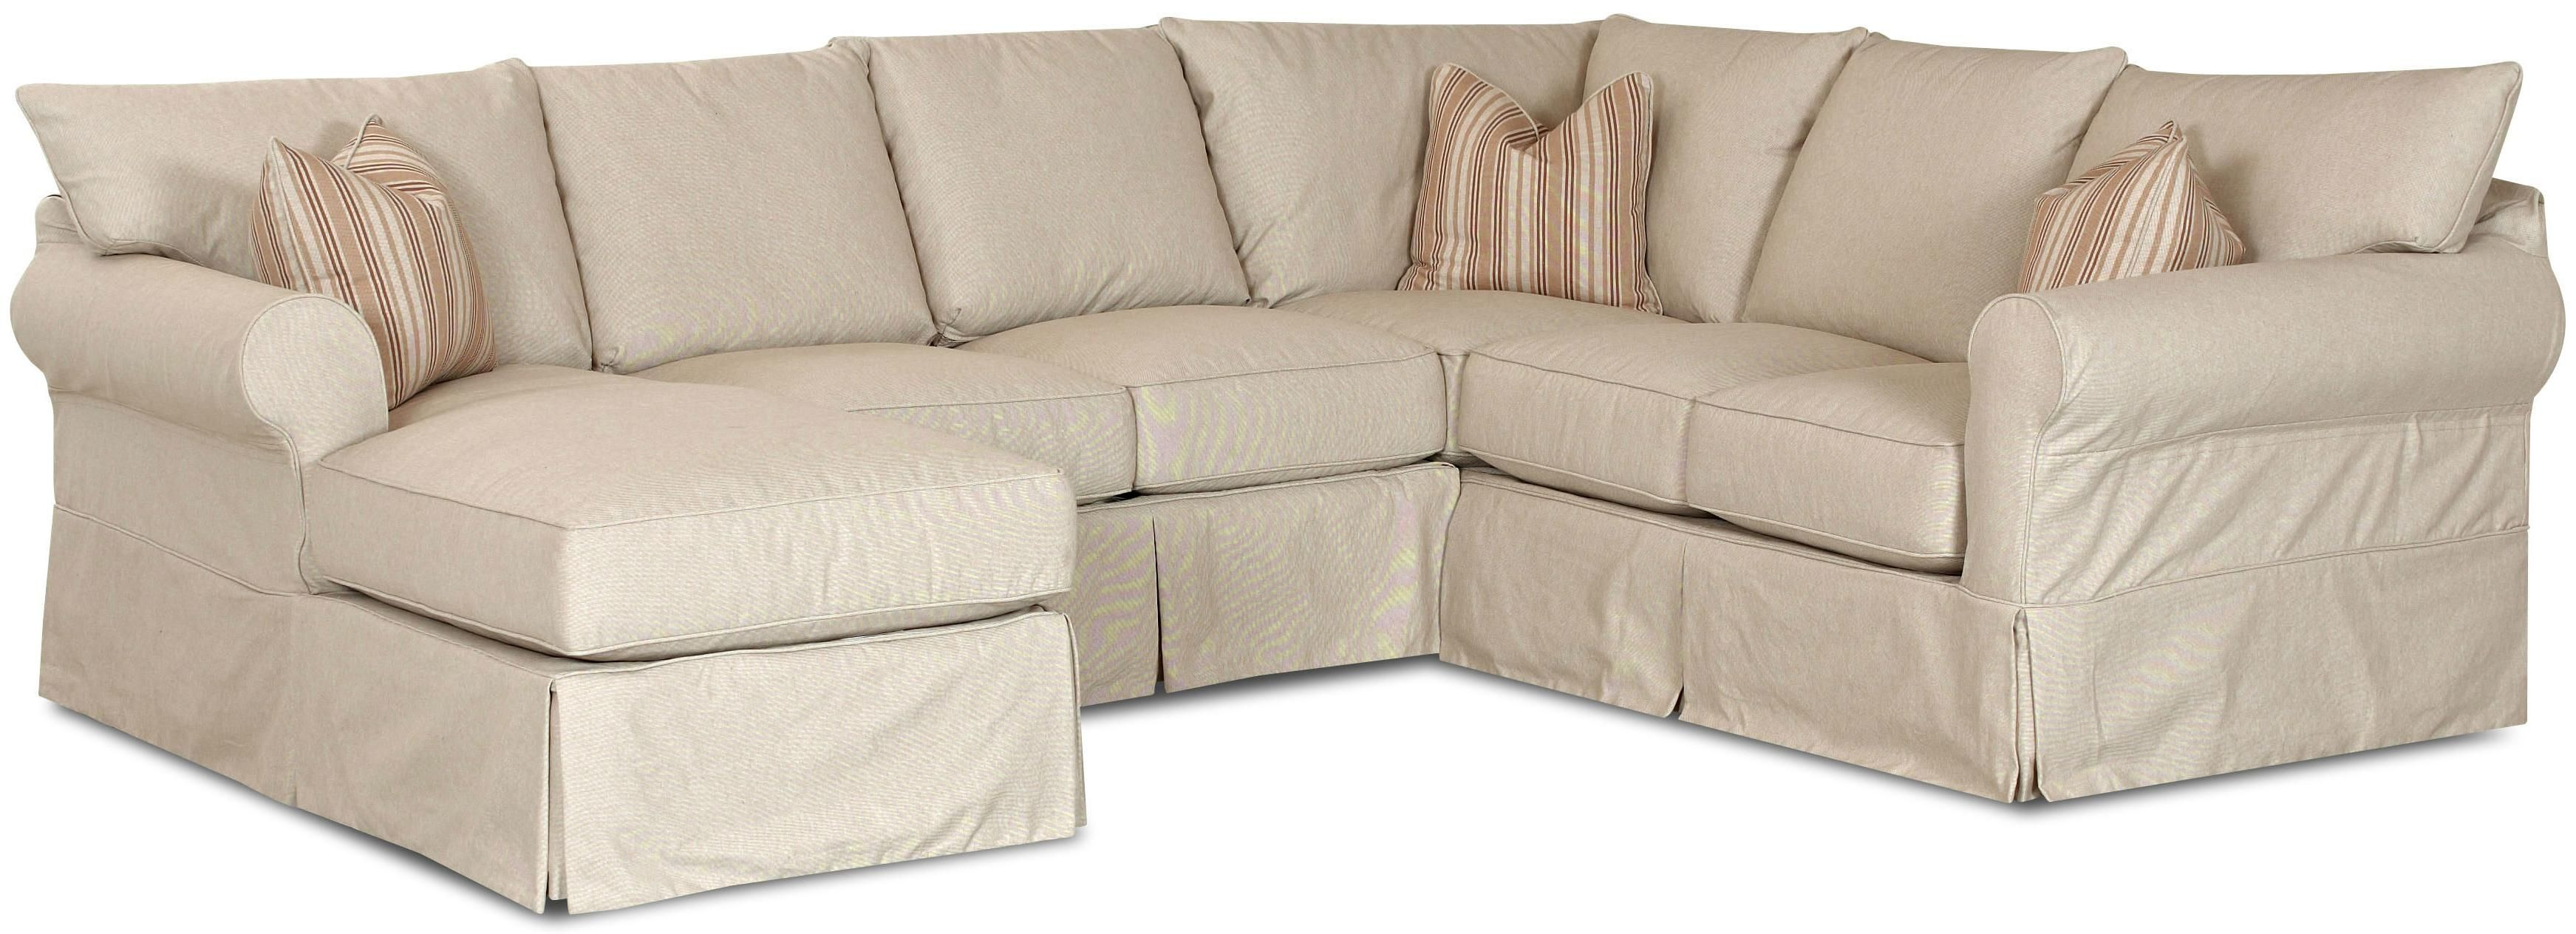 Slipcover Sectional Couch Chaise